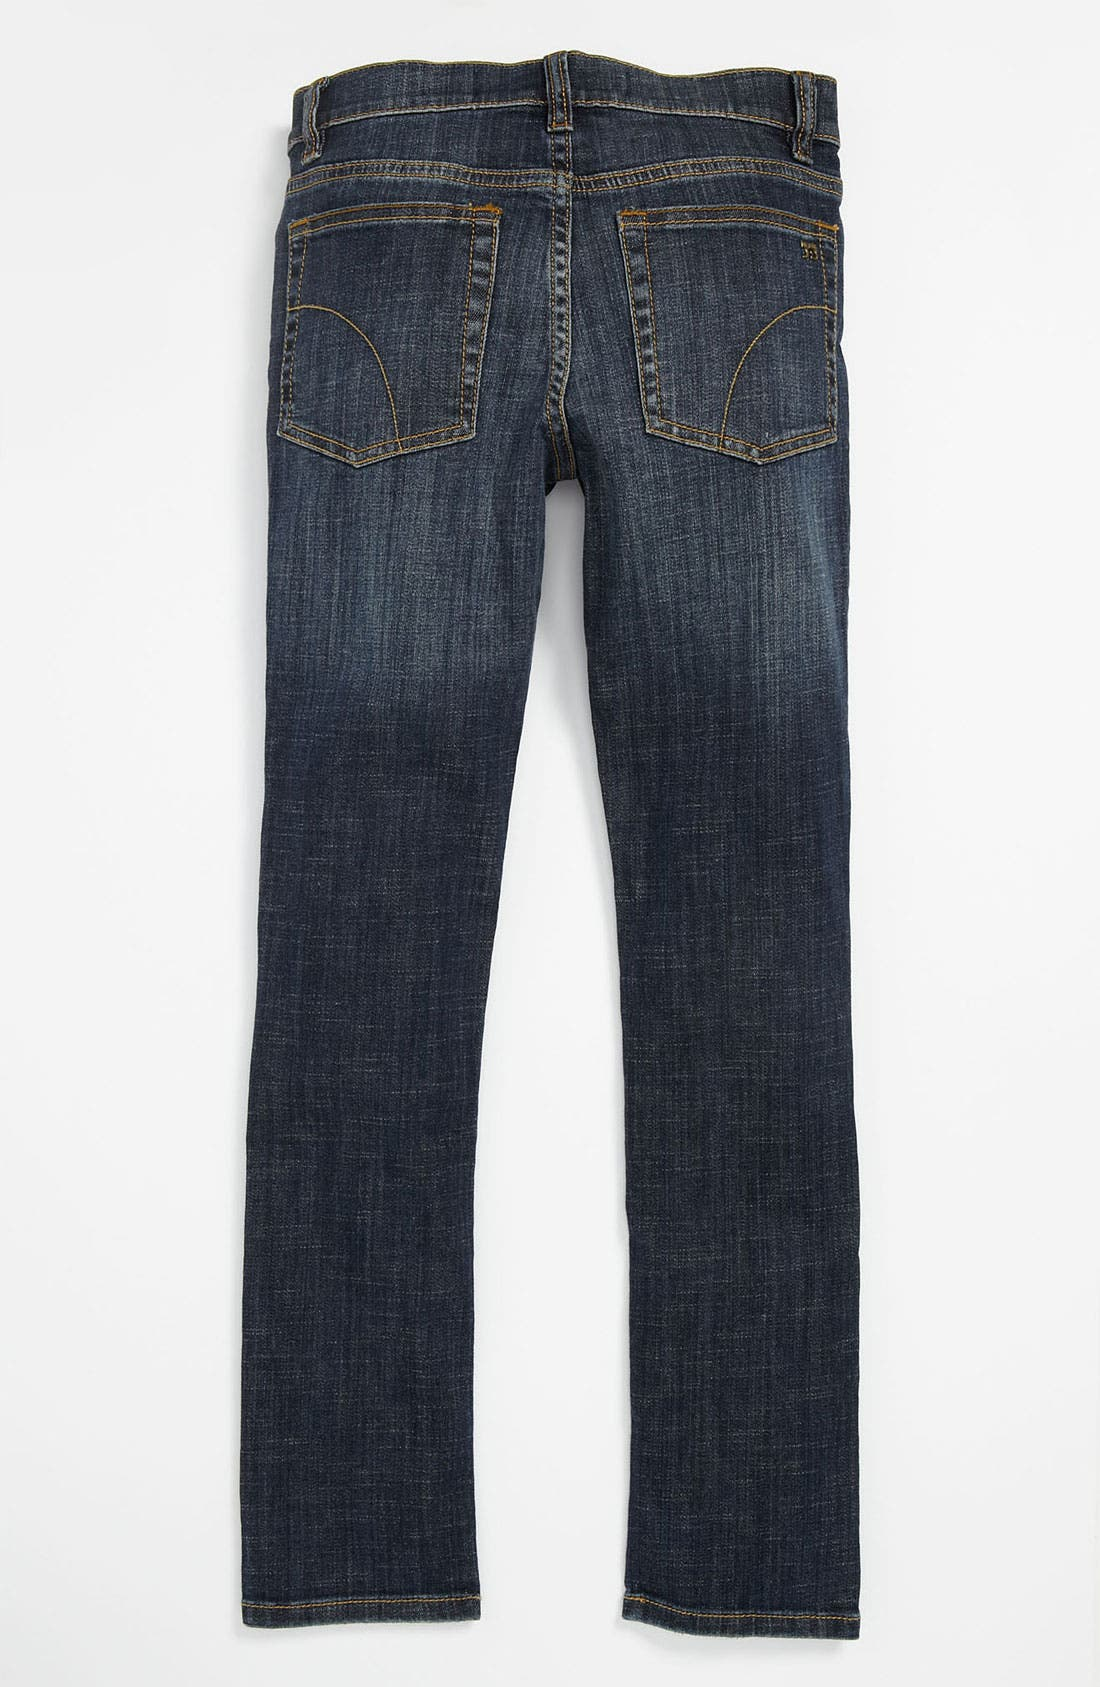 Alternate Image 1 Selected - Joe's 'Rad' Skinny Leg Jeans (Big Boys)